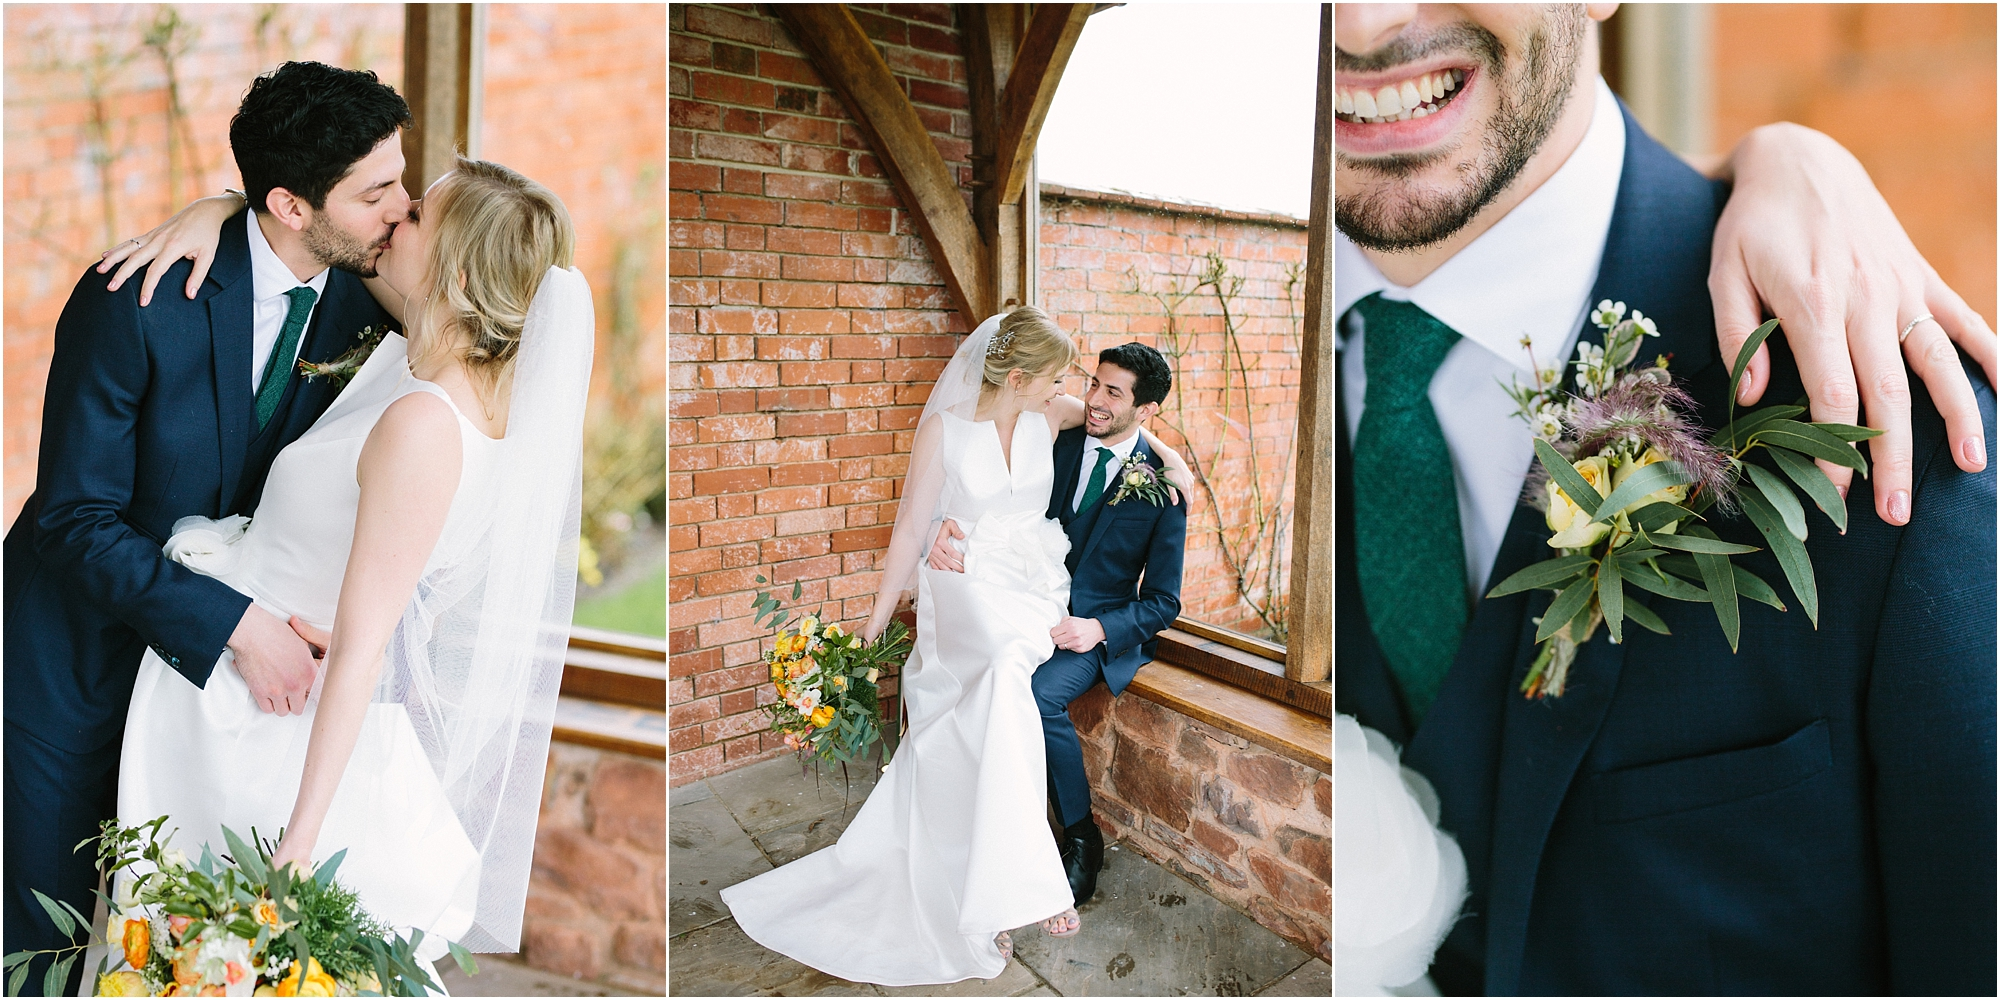 Bride and groom in the arbour at Upton Barn Wedding Venue